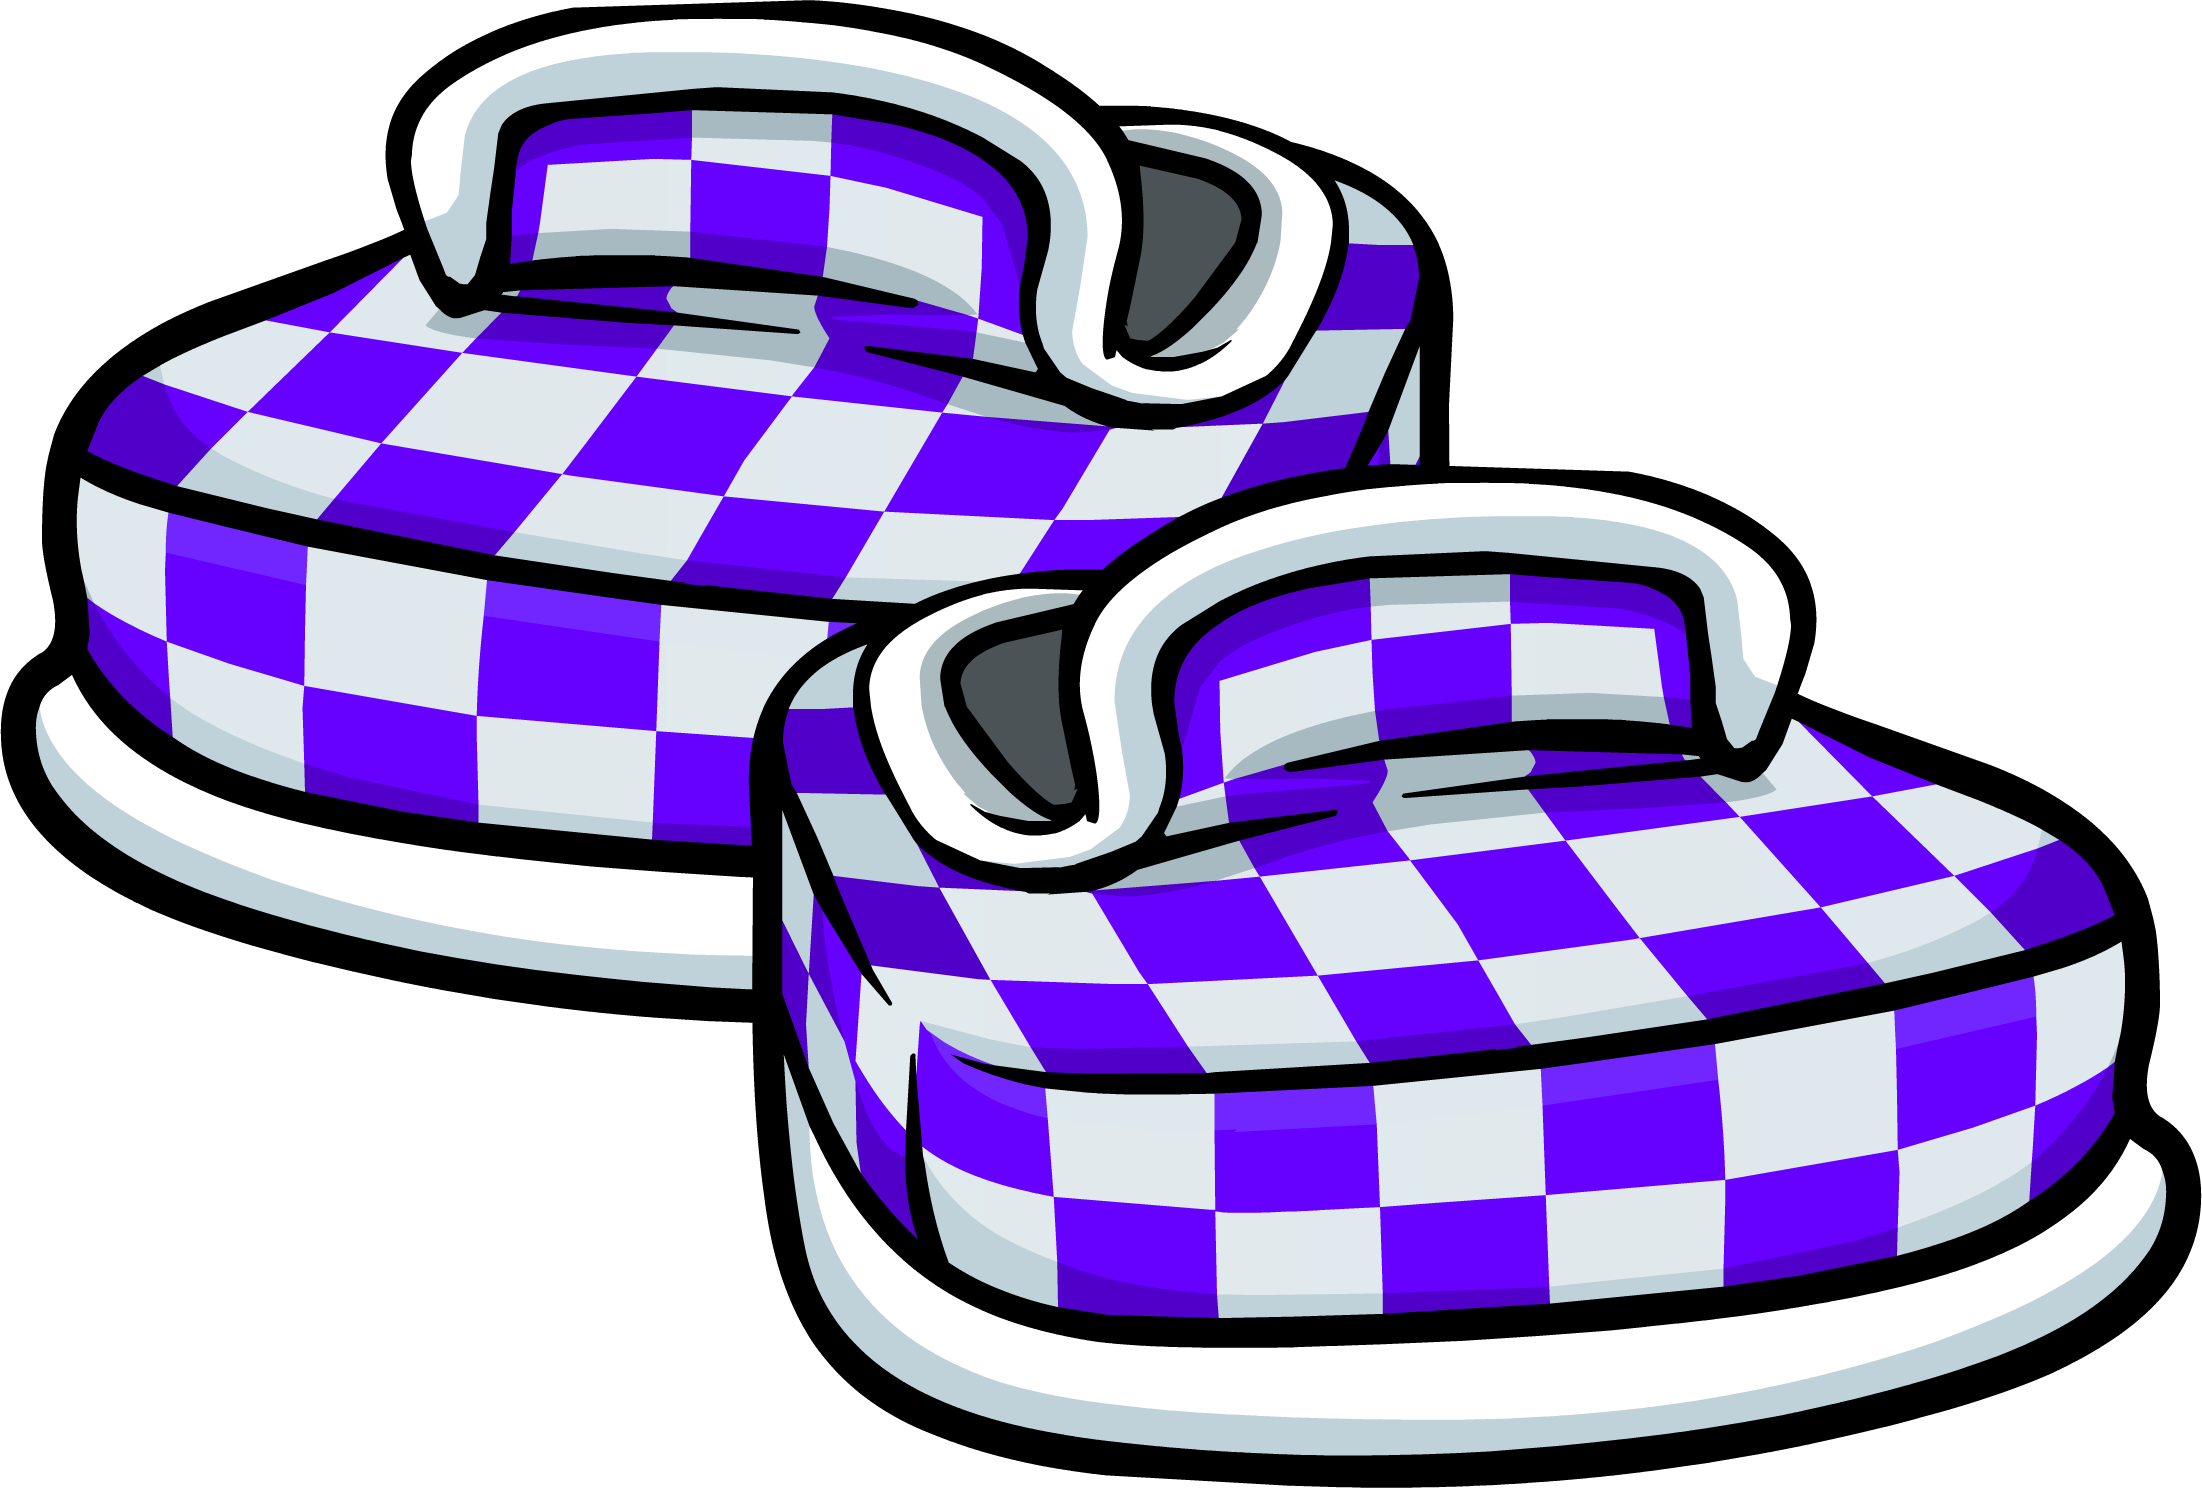 Purple Checkered Shoes (ID 6106)